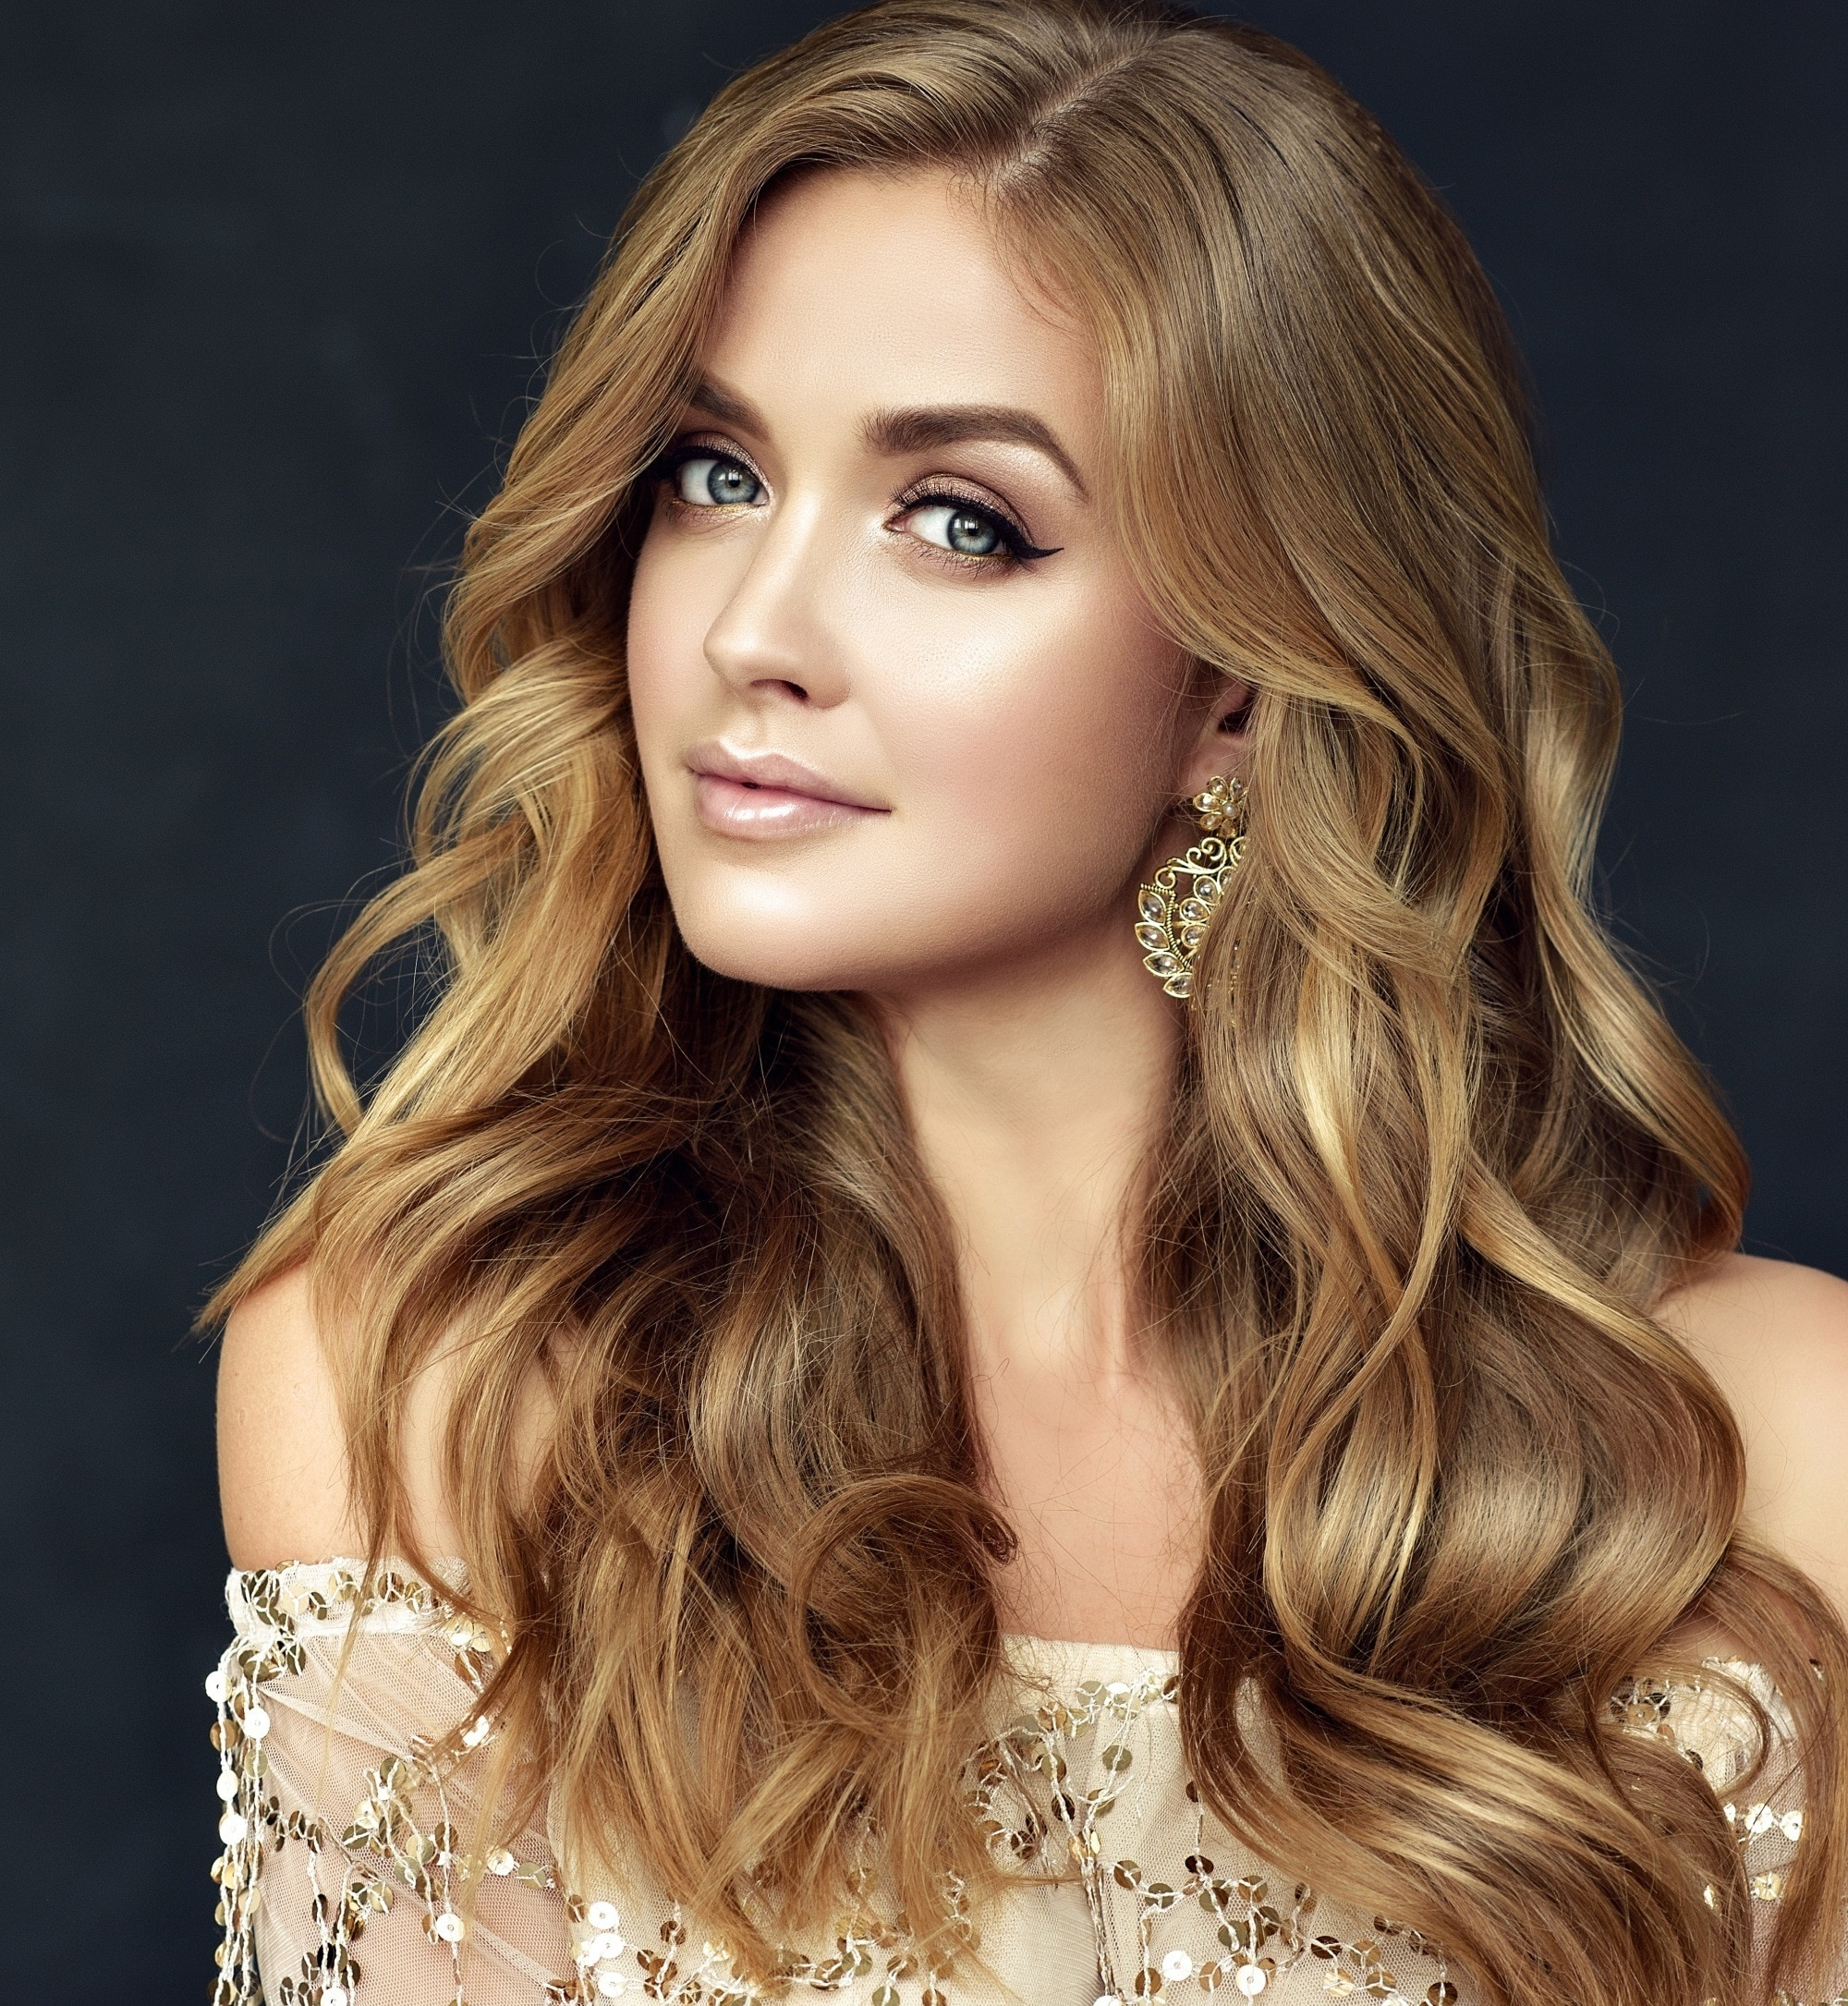 Golden brown hair color: Closeup shot of a woman with long brown wavy hair against a dark backdrop